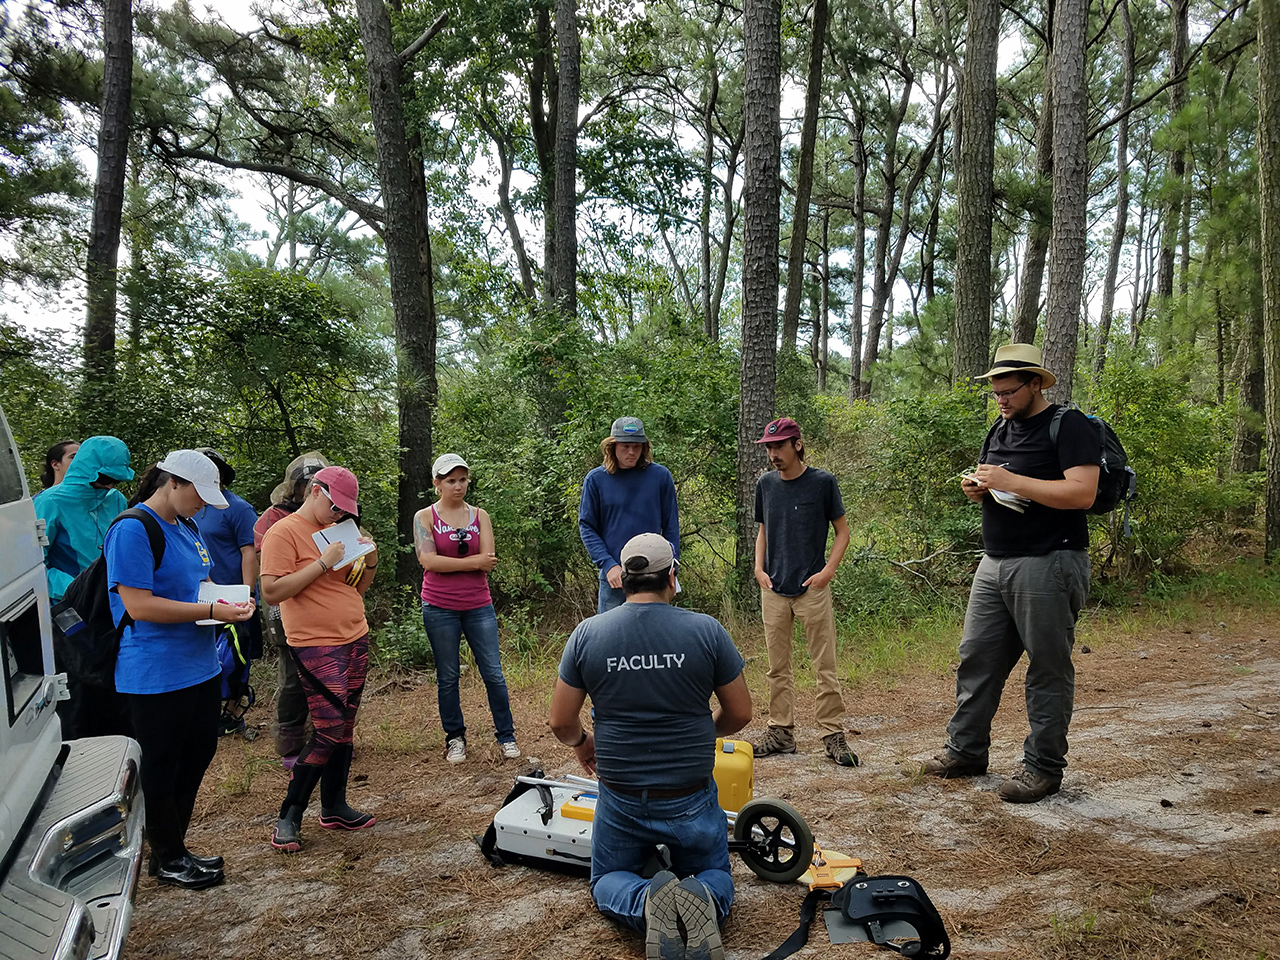 Students in the maritime forest with GPR